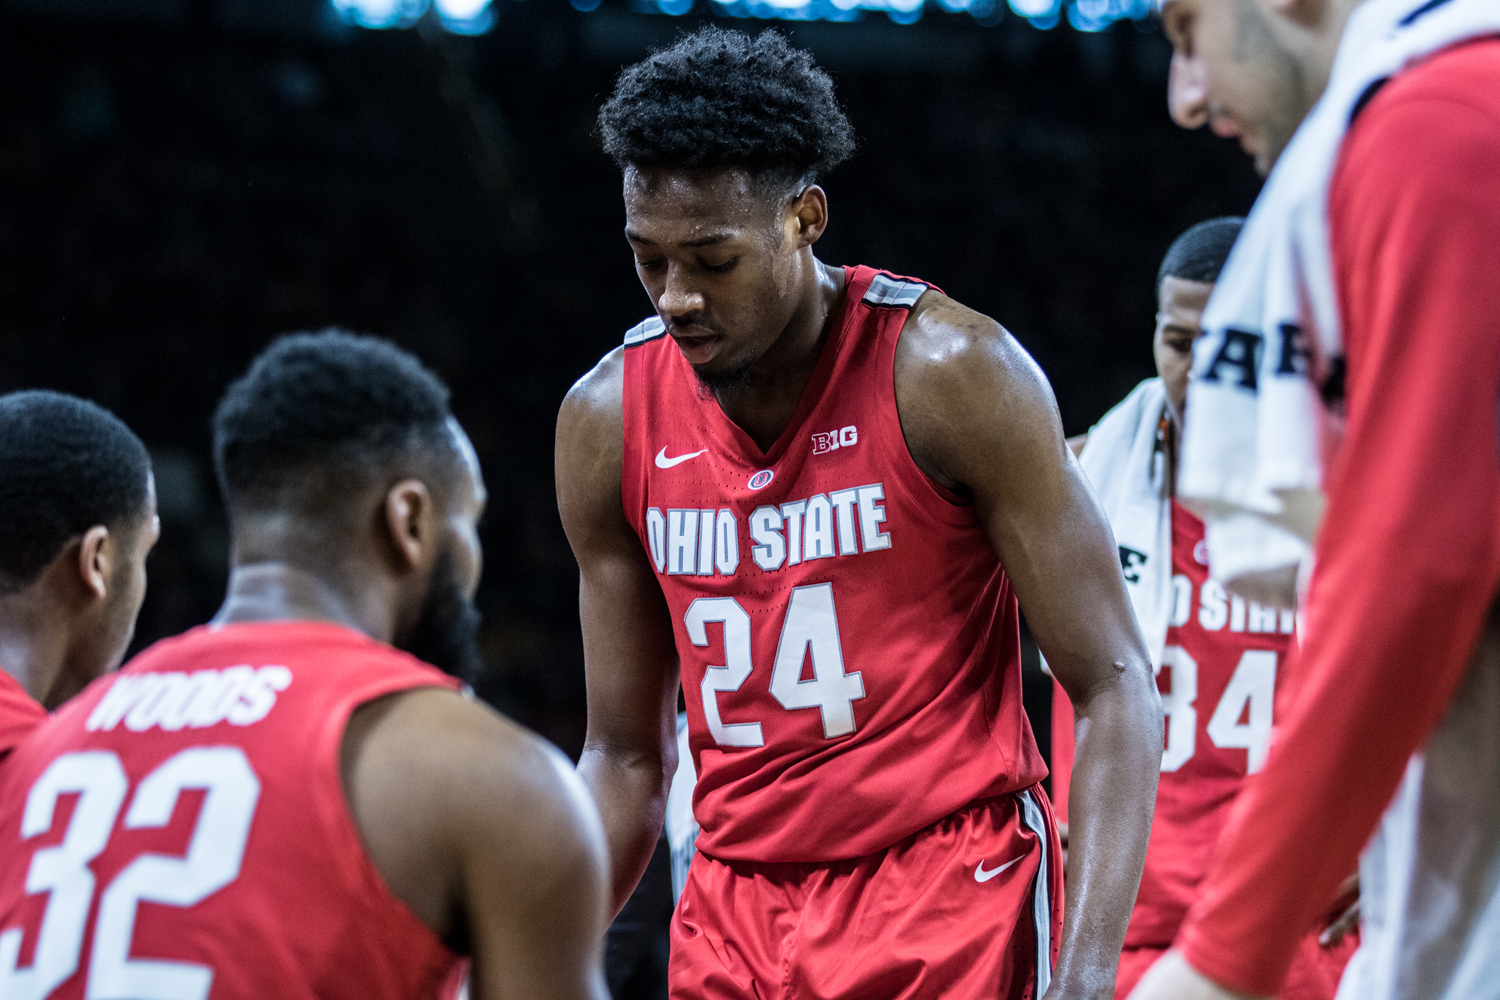 Ohio+State+forward+Andre+Wesson+meets+with+his+team+during+a+timeout+during+a+men%27s+basketball+matchup+between+Ohio+State+and+Iowa+at+Carver-Hawkeye+Arena+on+Saturday%2C+January+12%2C+2019.+The+Hawkeyes+defeated+the+Buckeyes%2C+72-62.